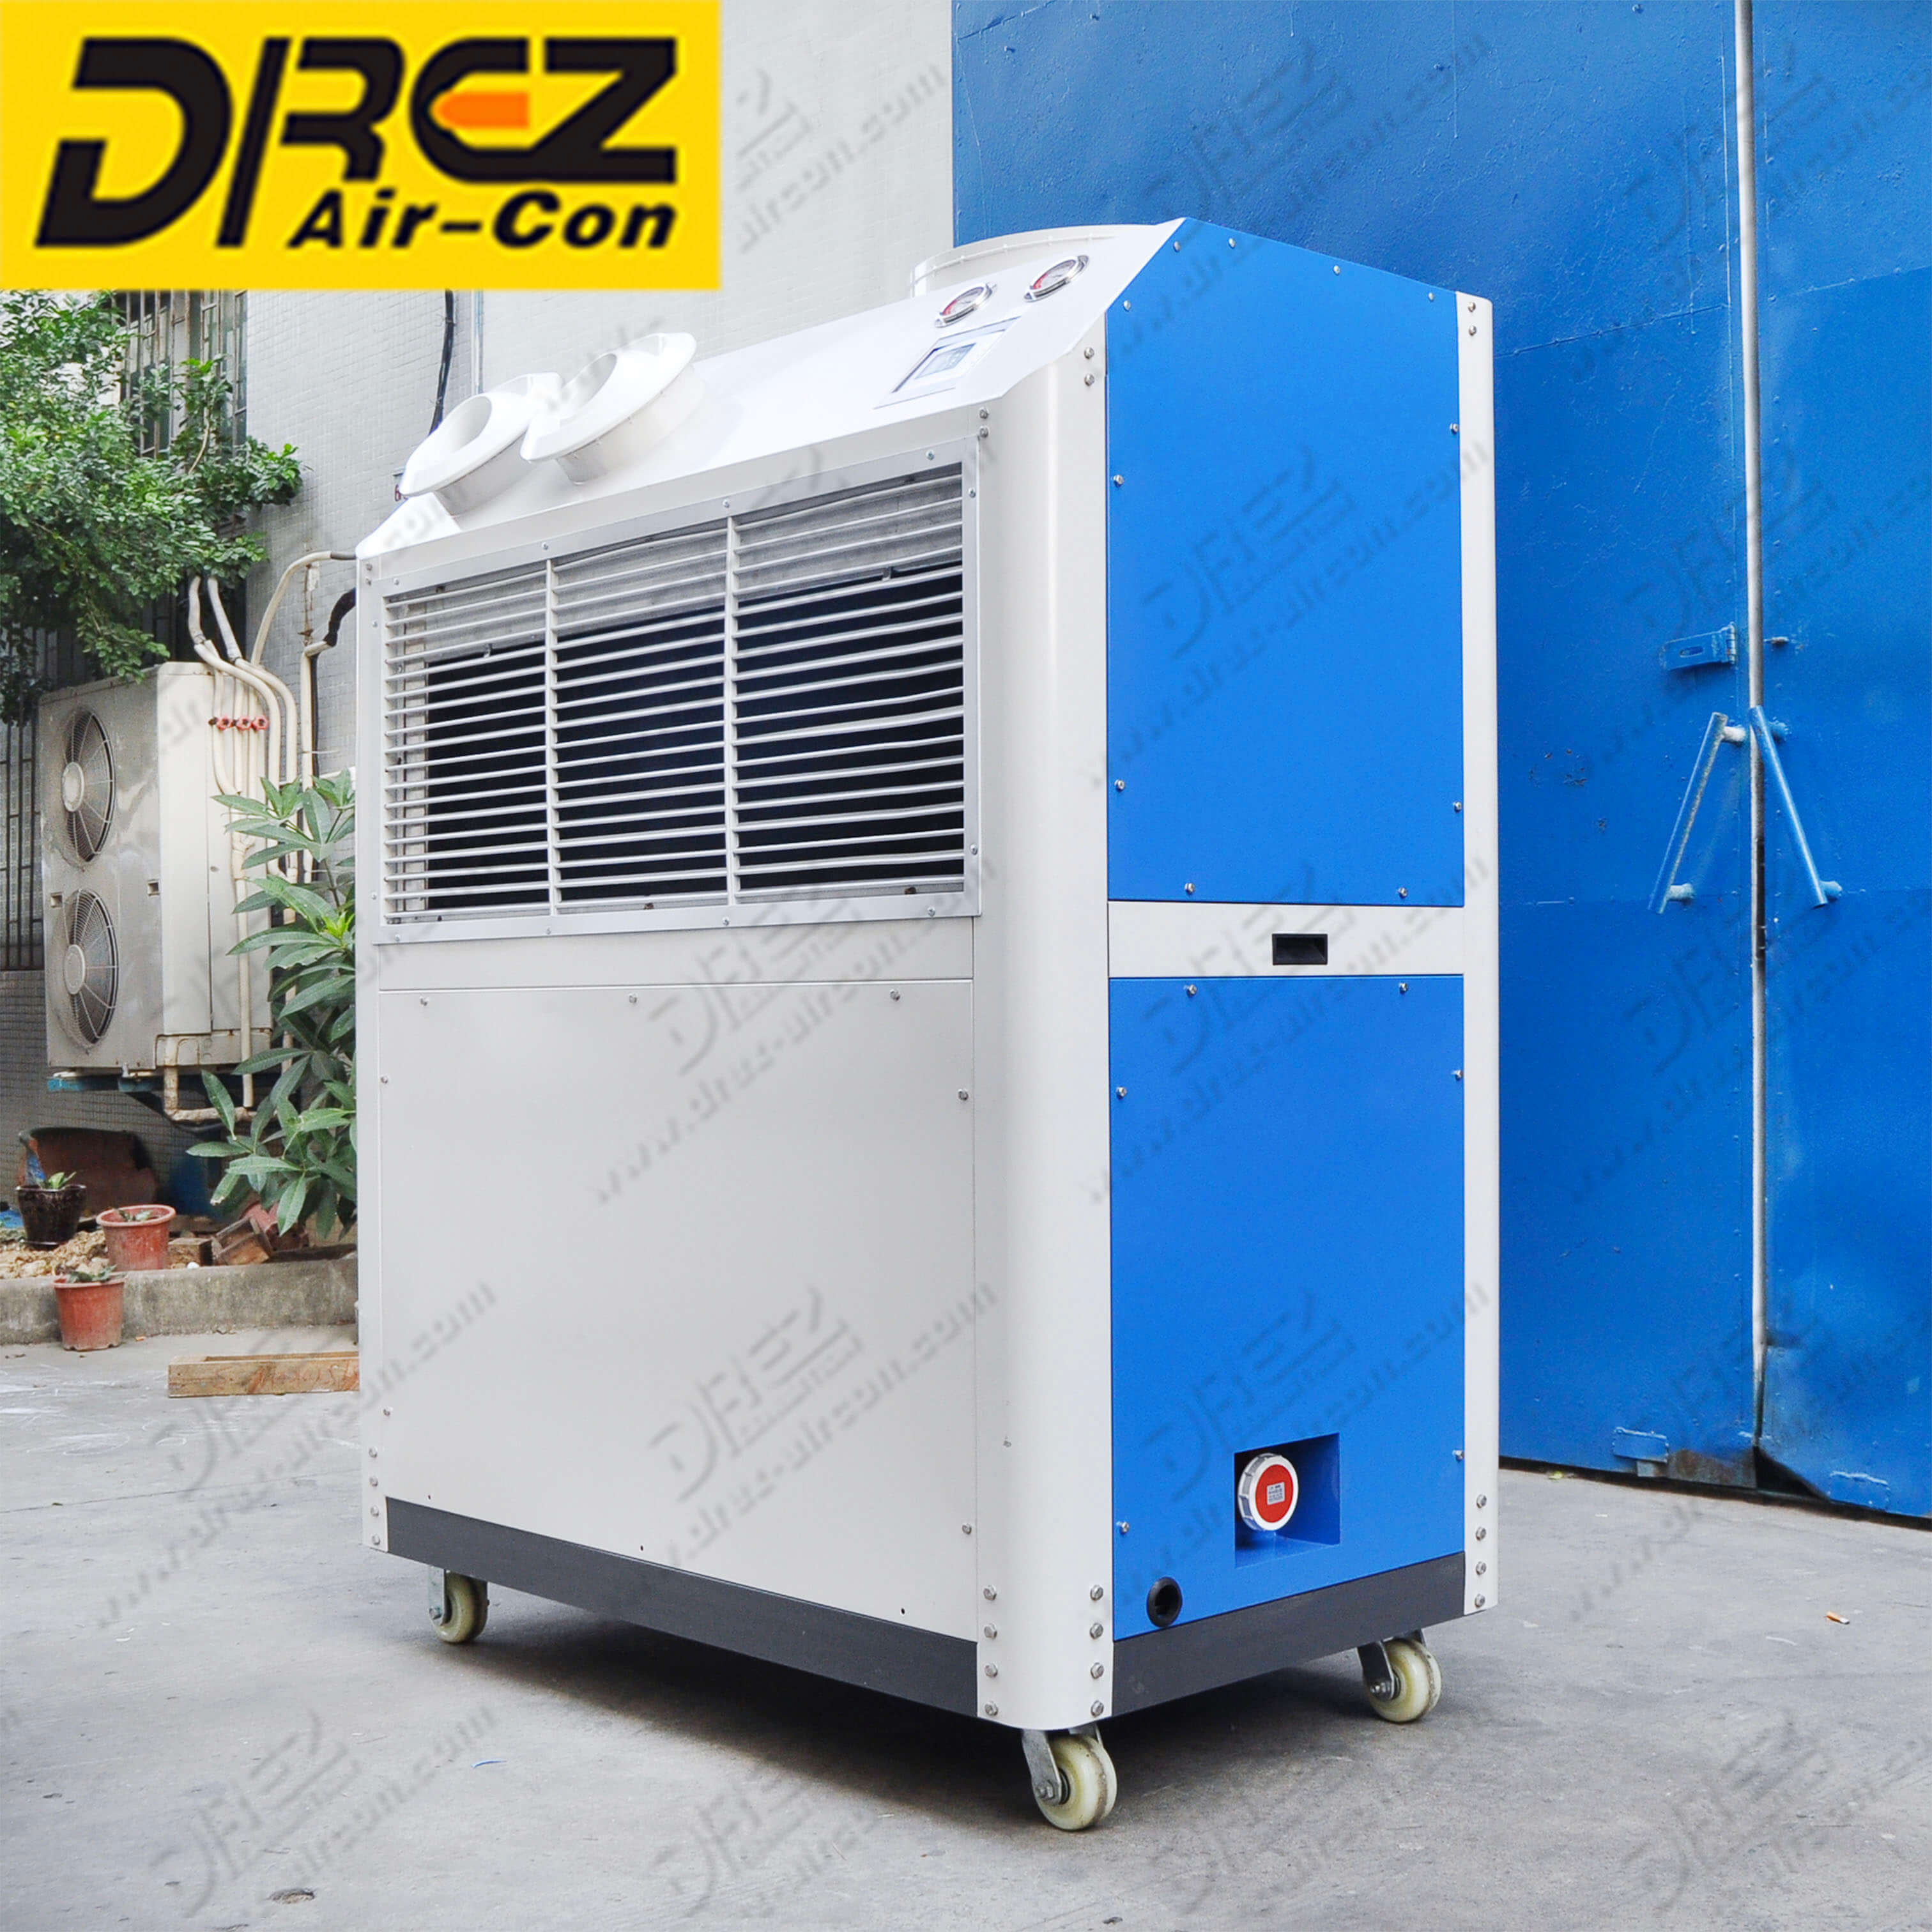 Drez Ducted AC Units 6 Ton Tent Air Conditioner Portable Aircond for Wedding Halls